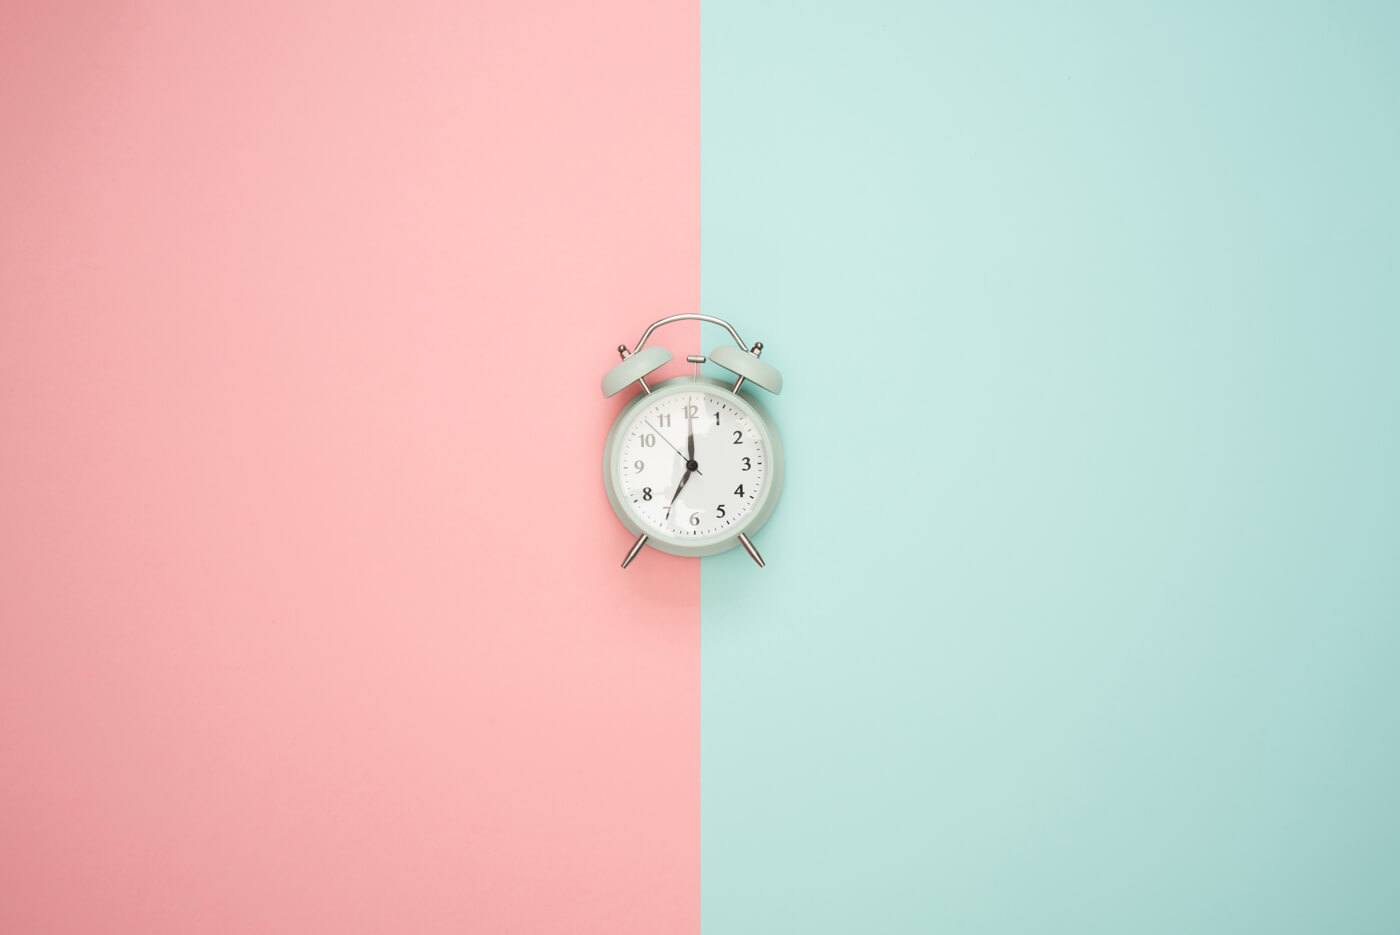 a clock on blue and pink background